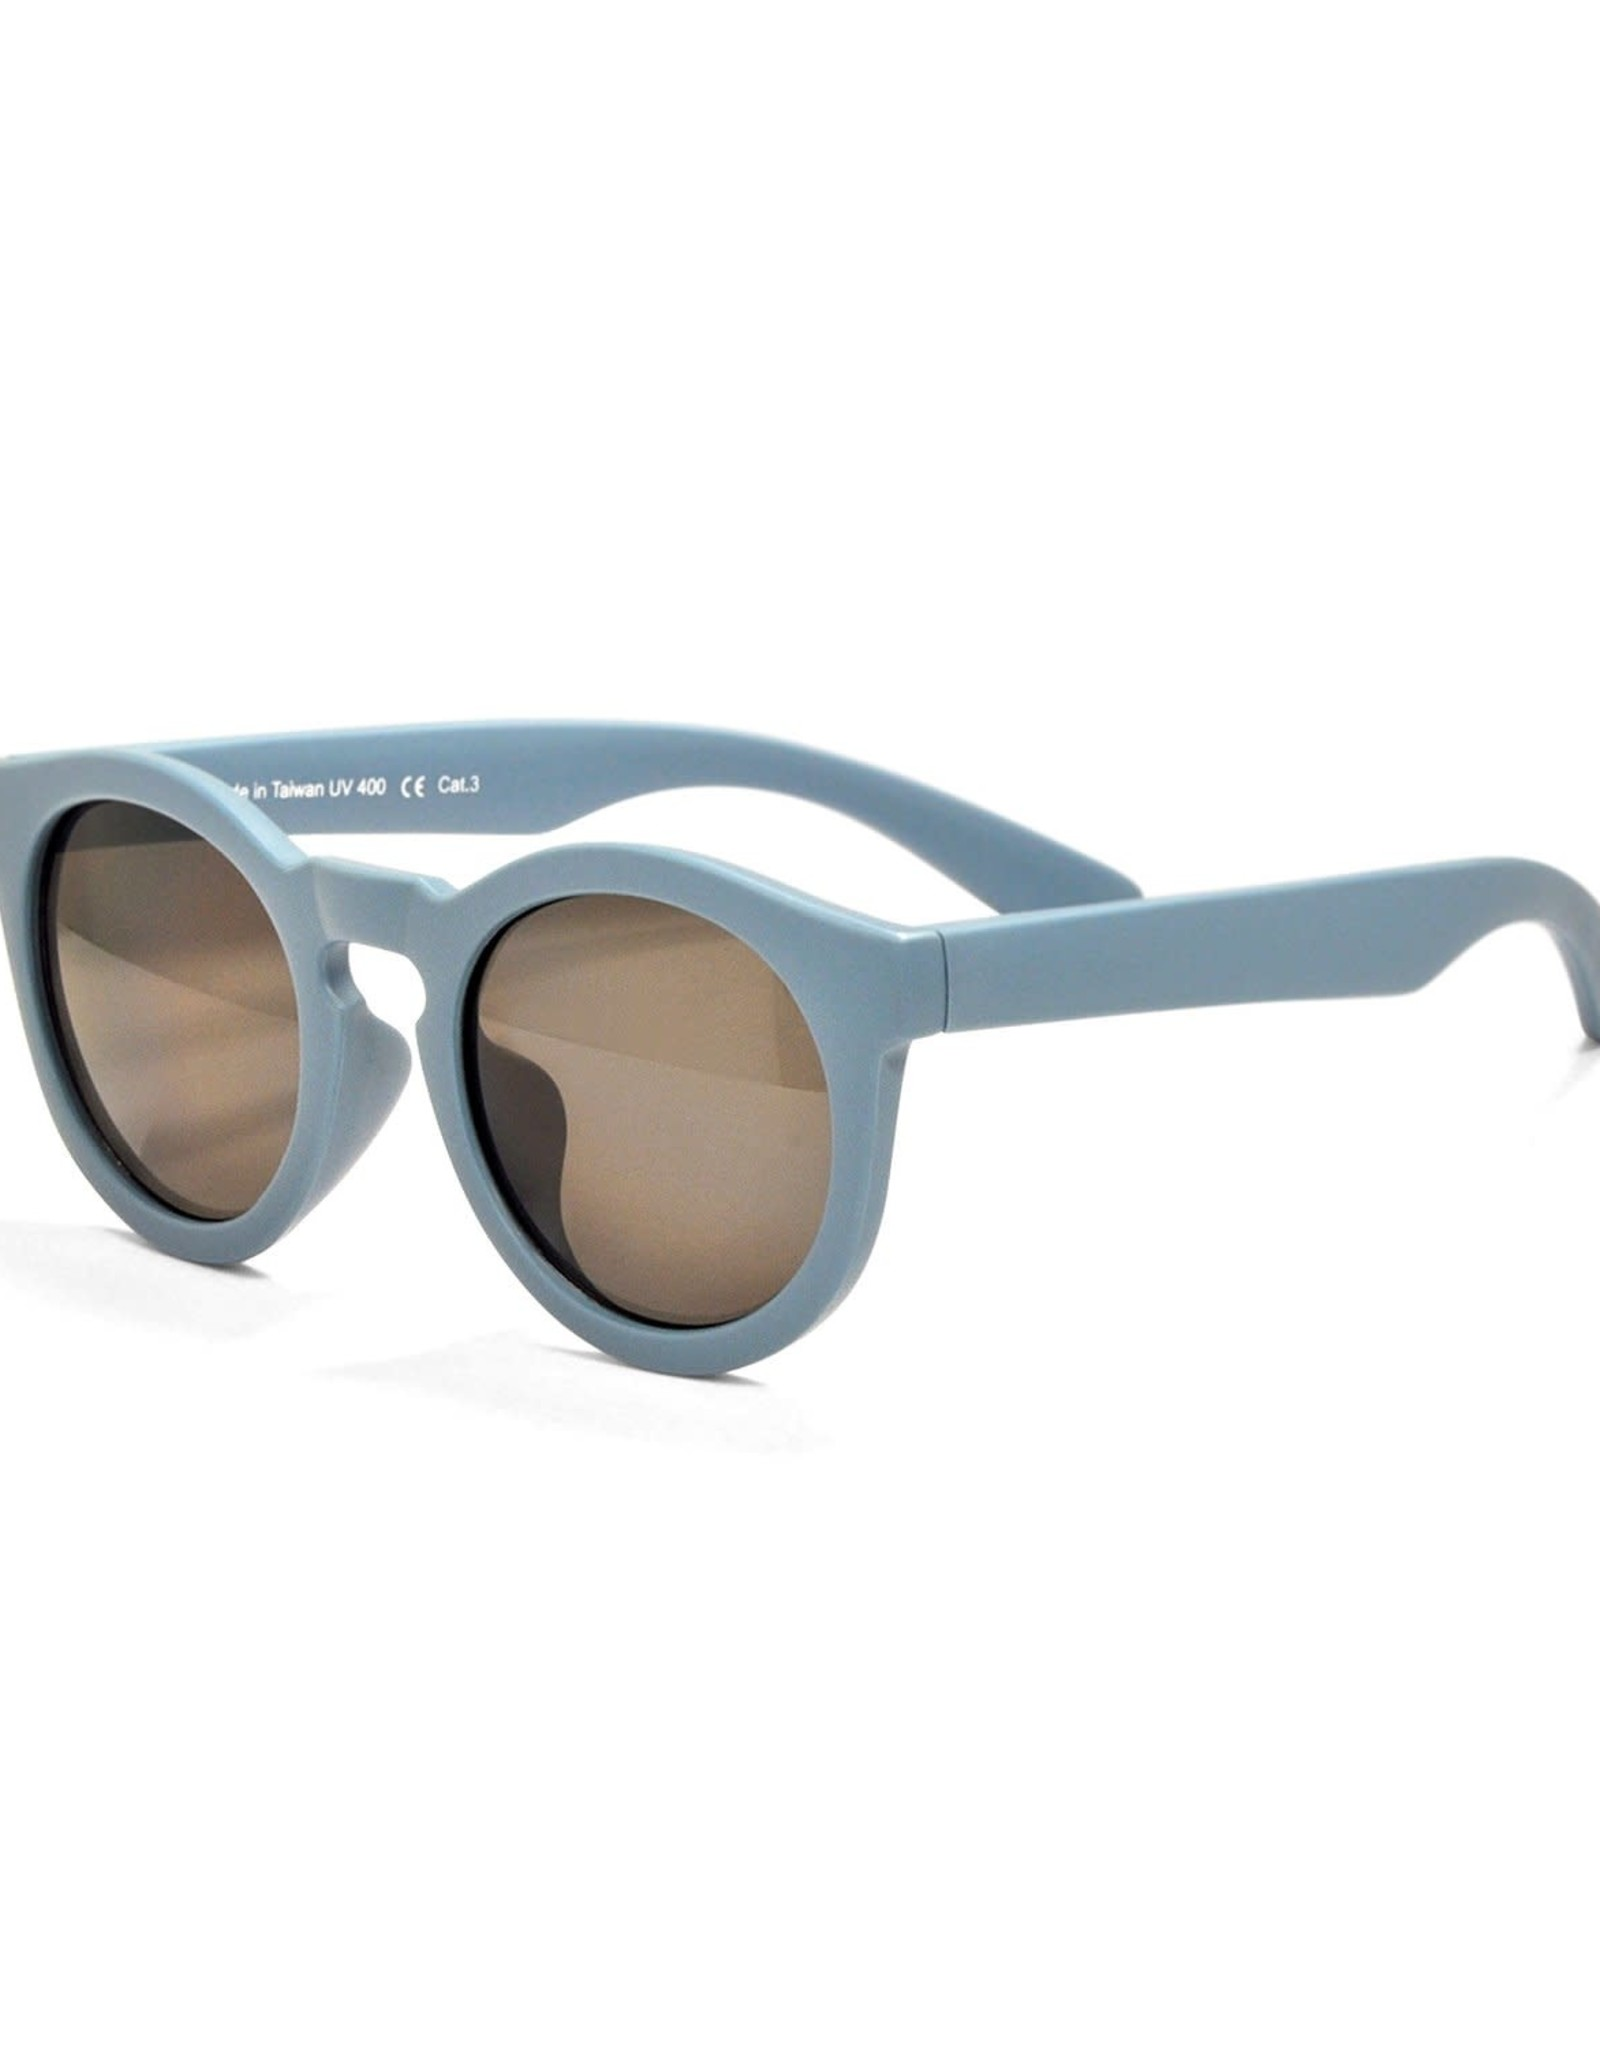 Real Shades Chill Sunglasses, Steel Blue